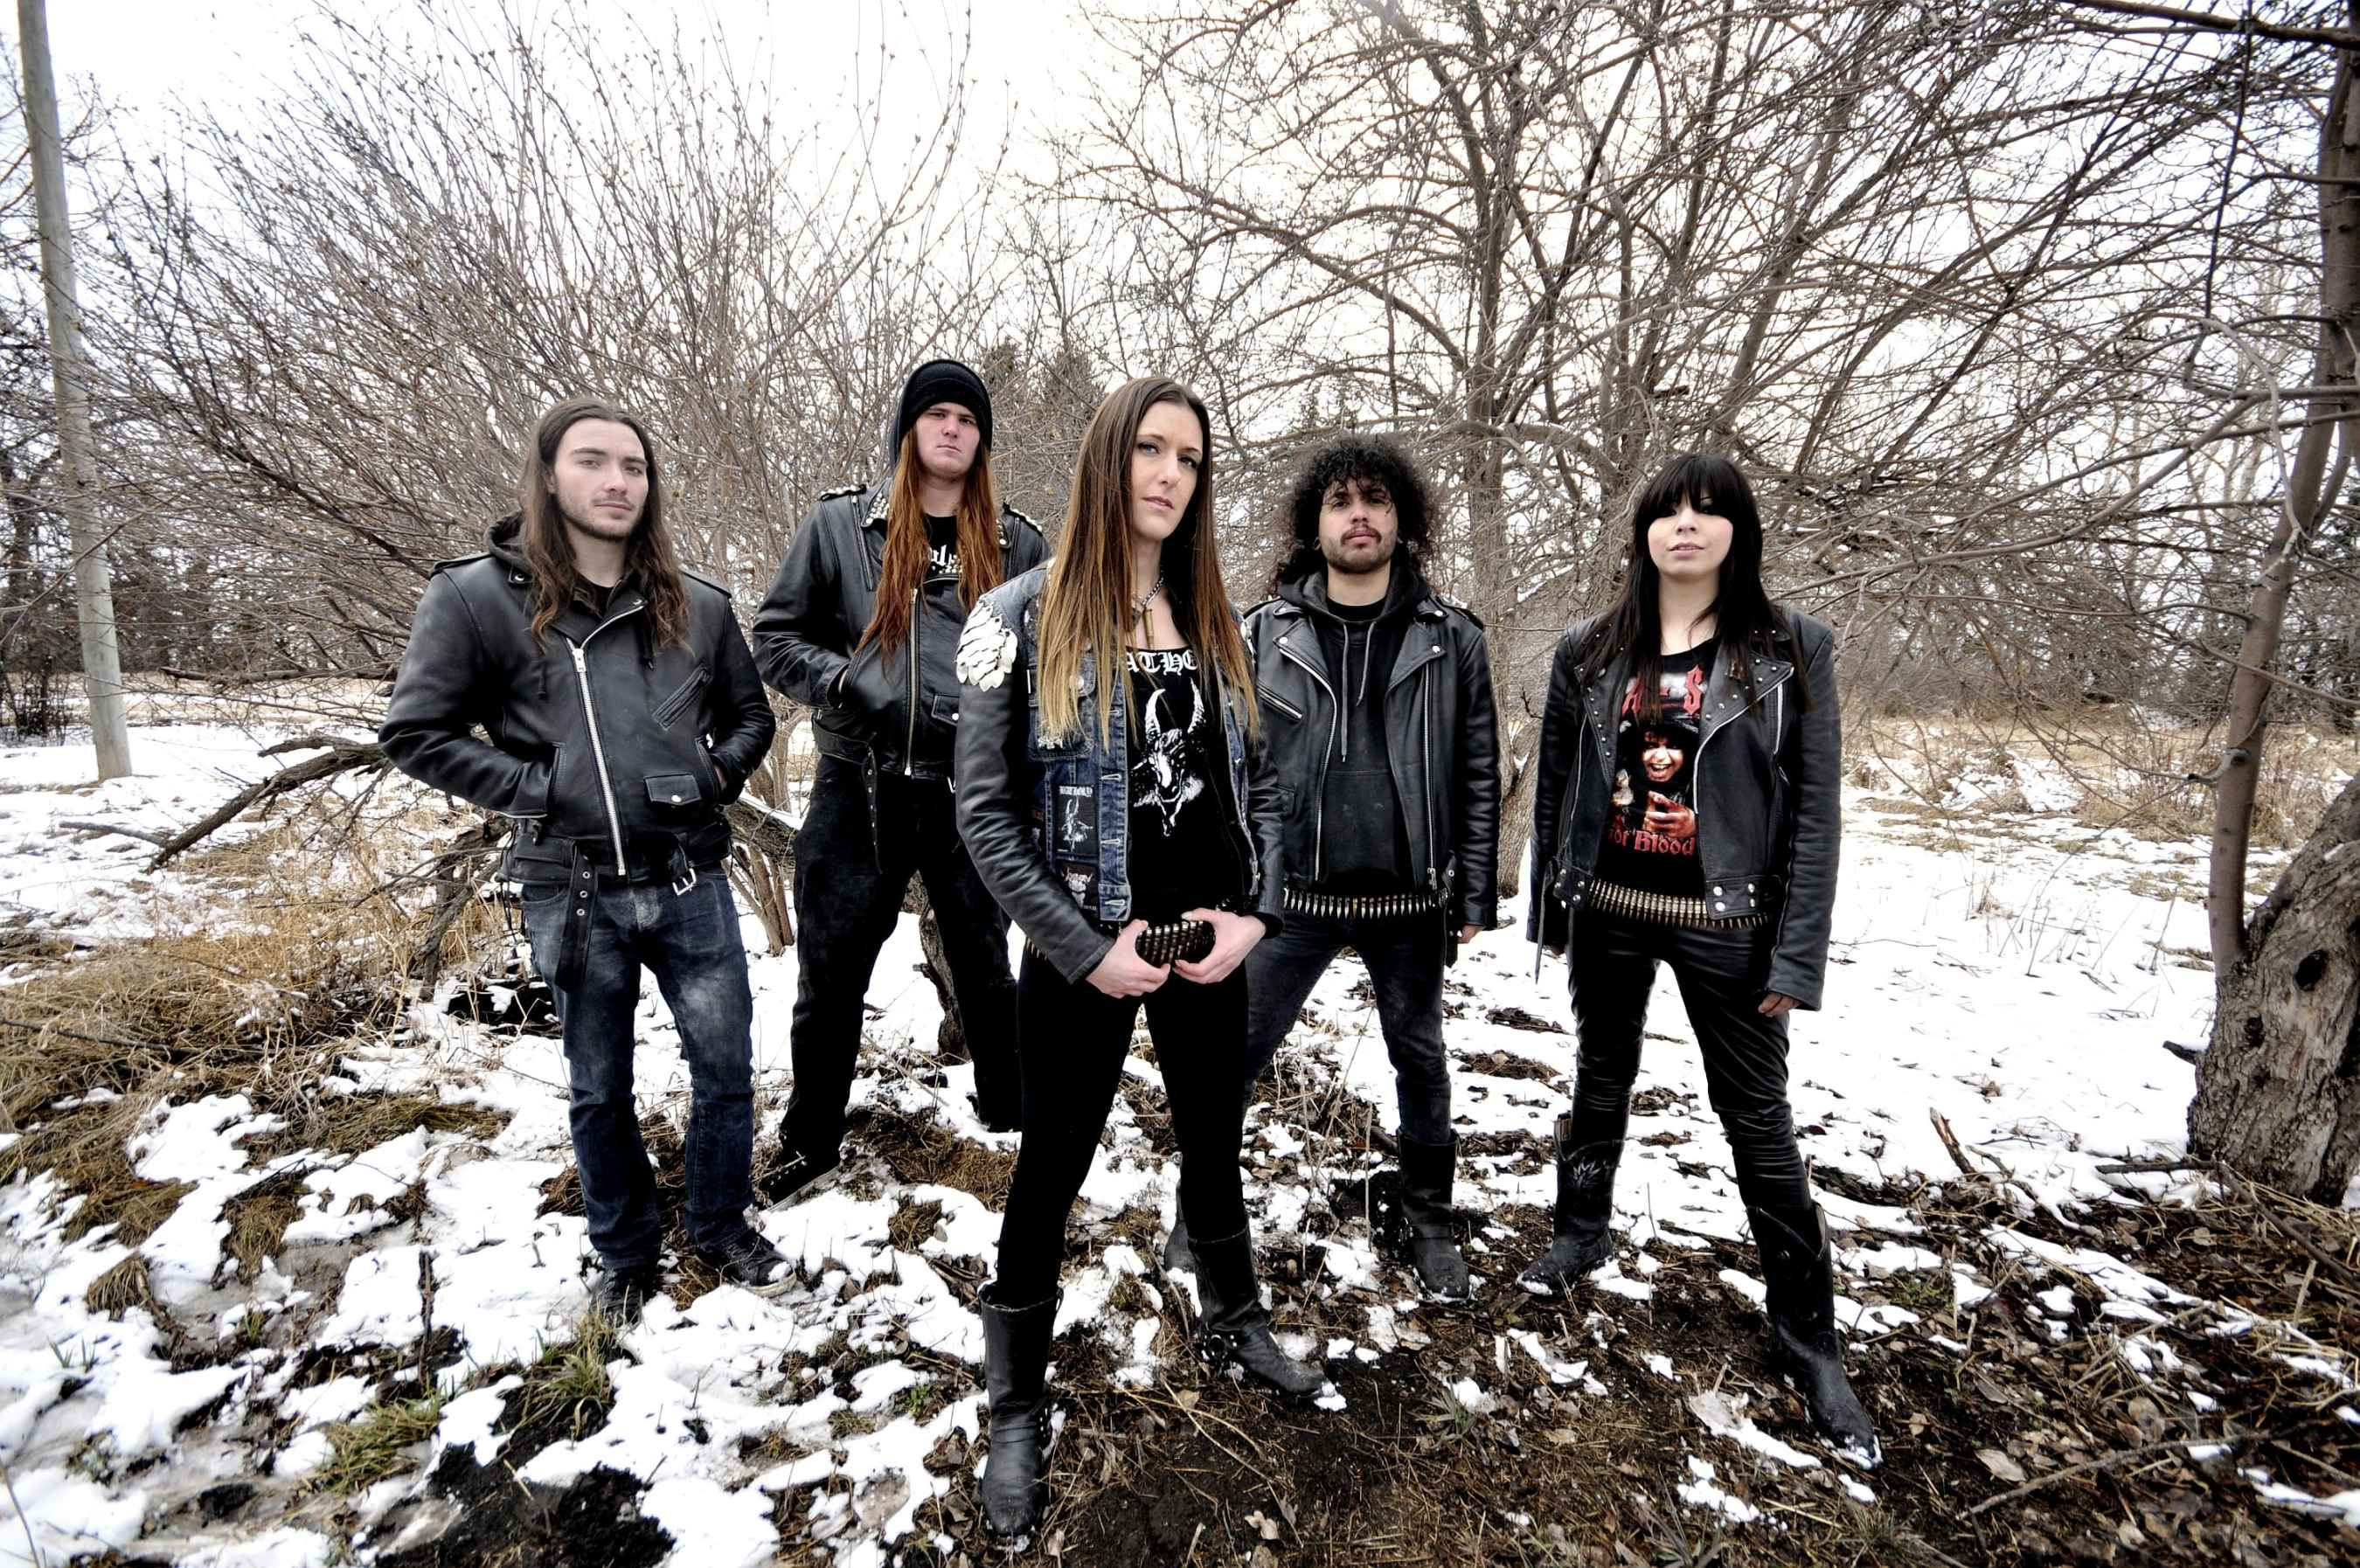 Thrash Metal Style Images Galleries With A Bite